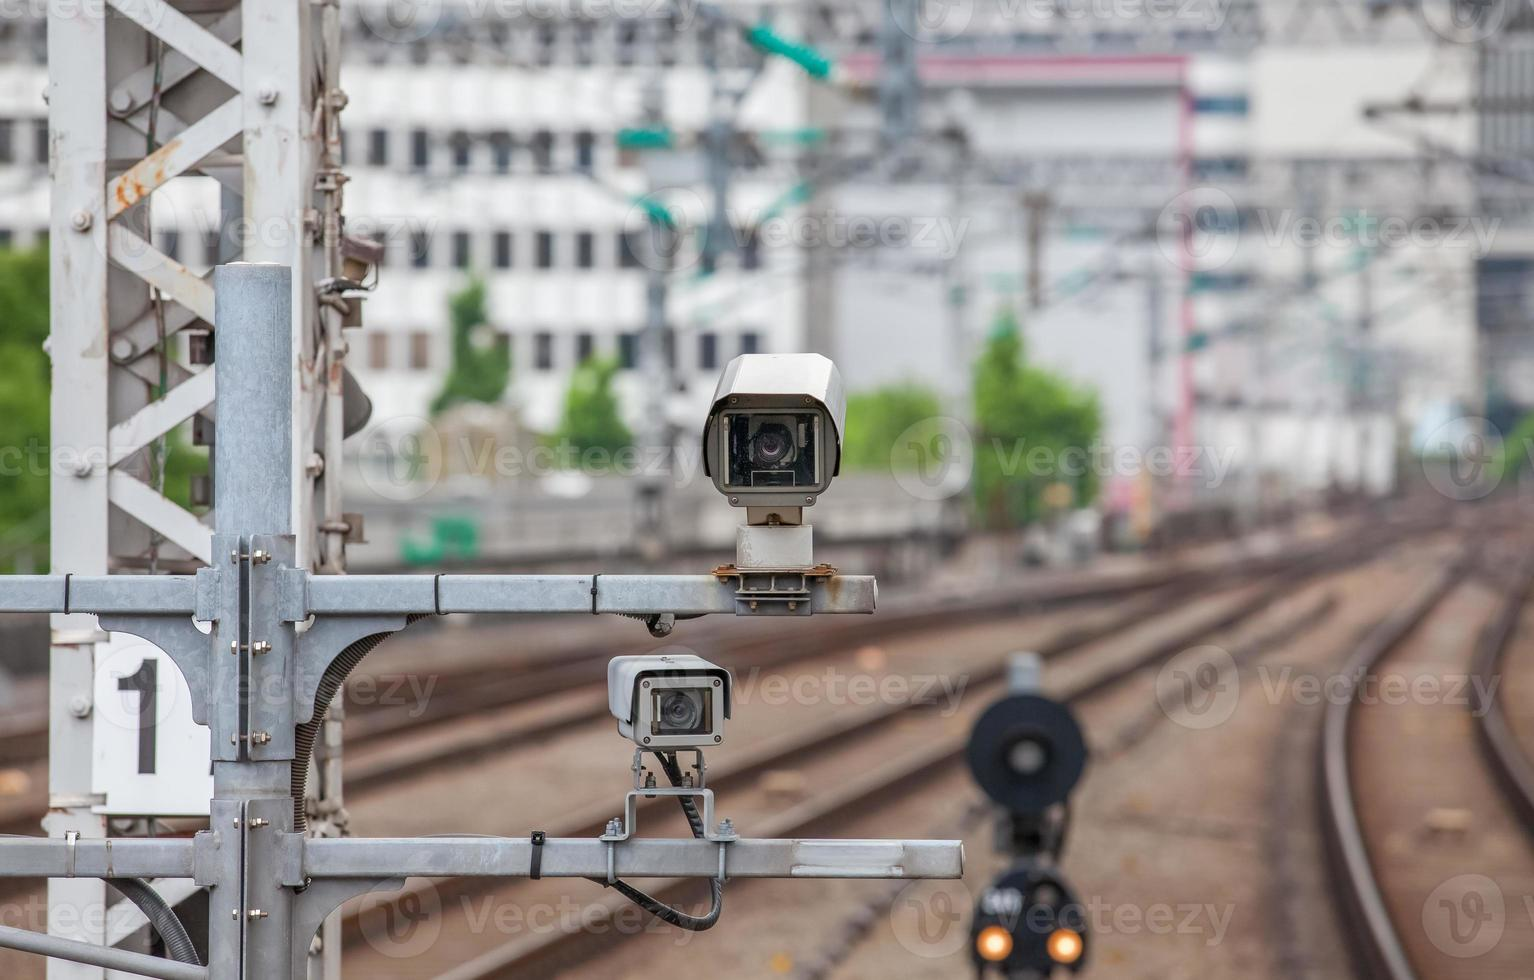 Video camera security system at train station photo